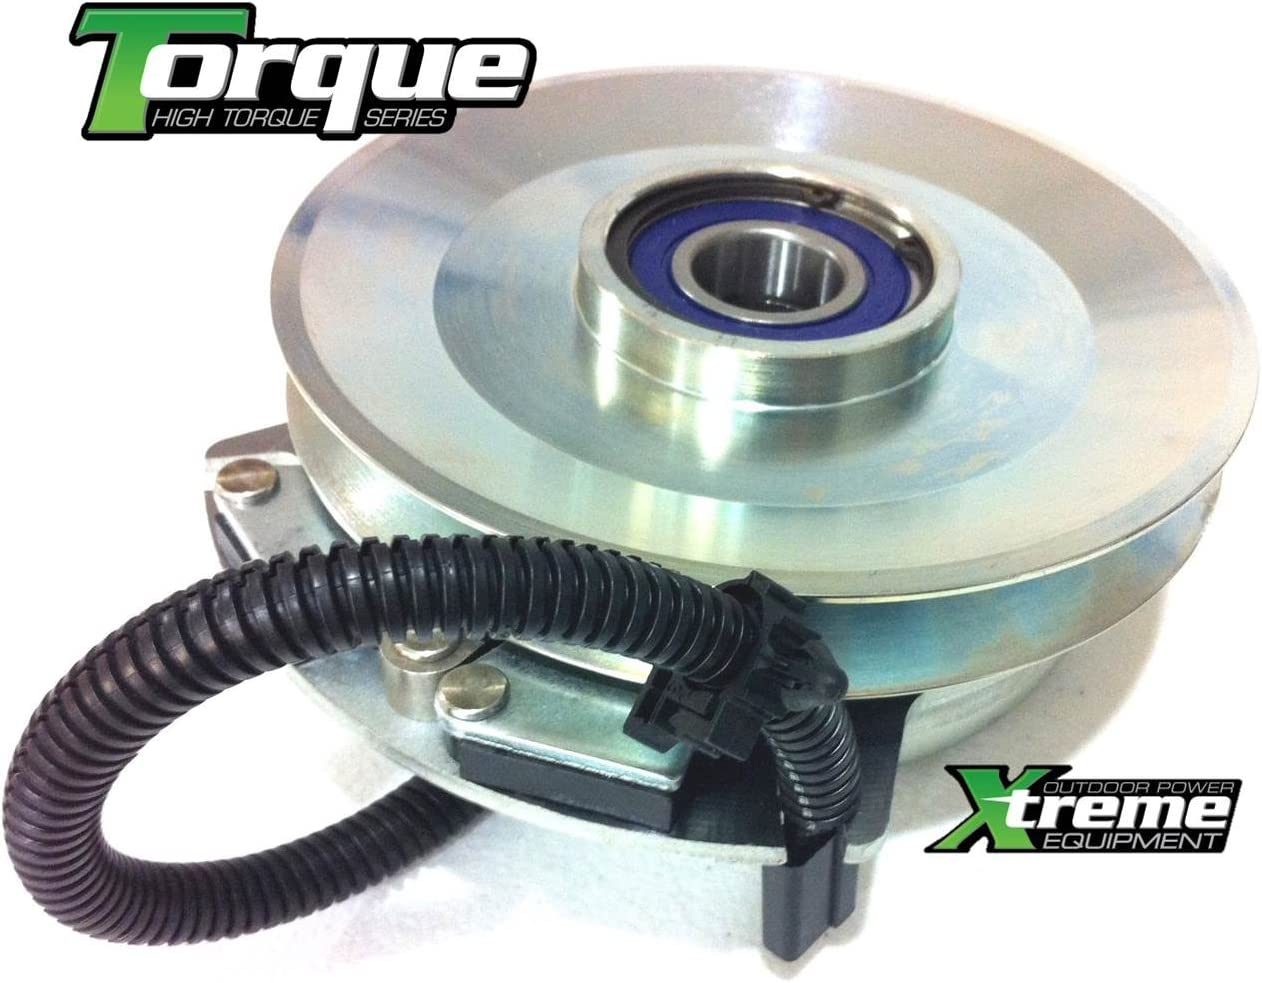 Replaces Warner 5218-259 PTO Blade Clutch Free Upgraded Bearings Billet Pulley